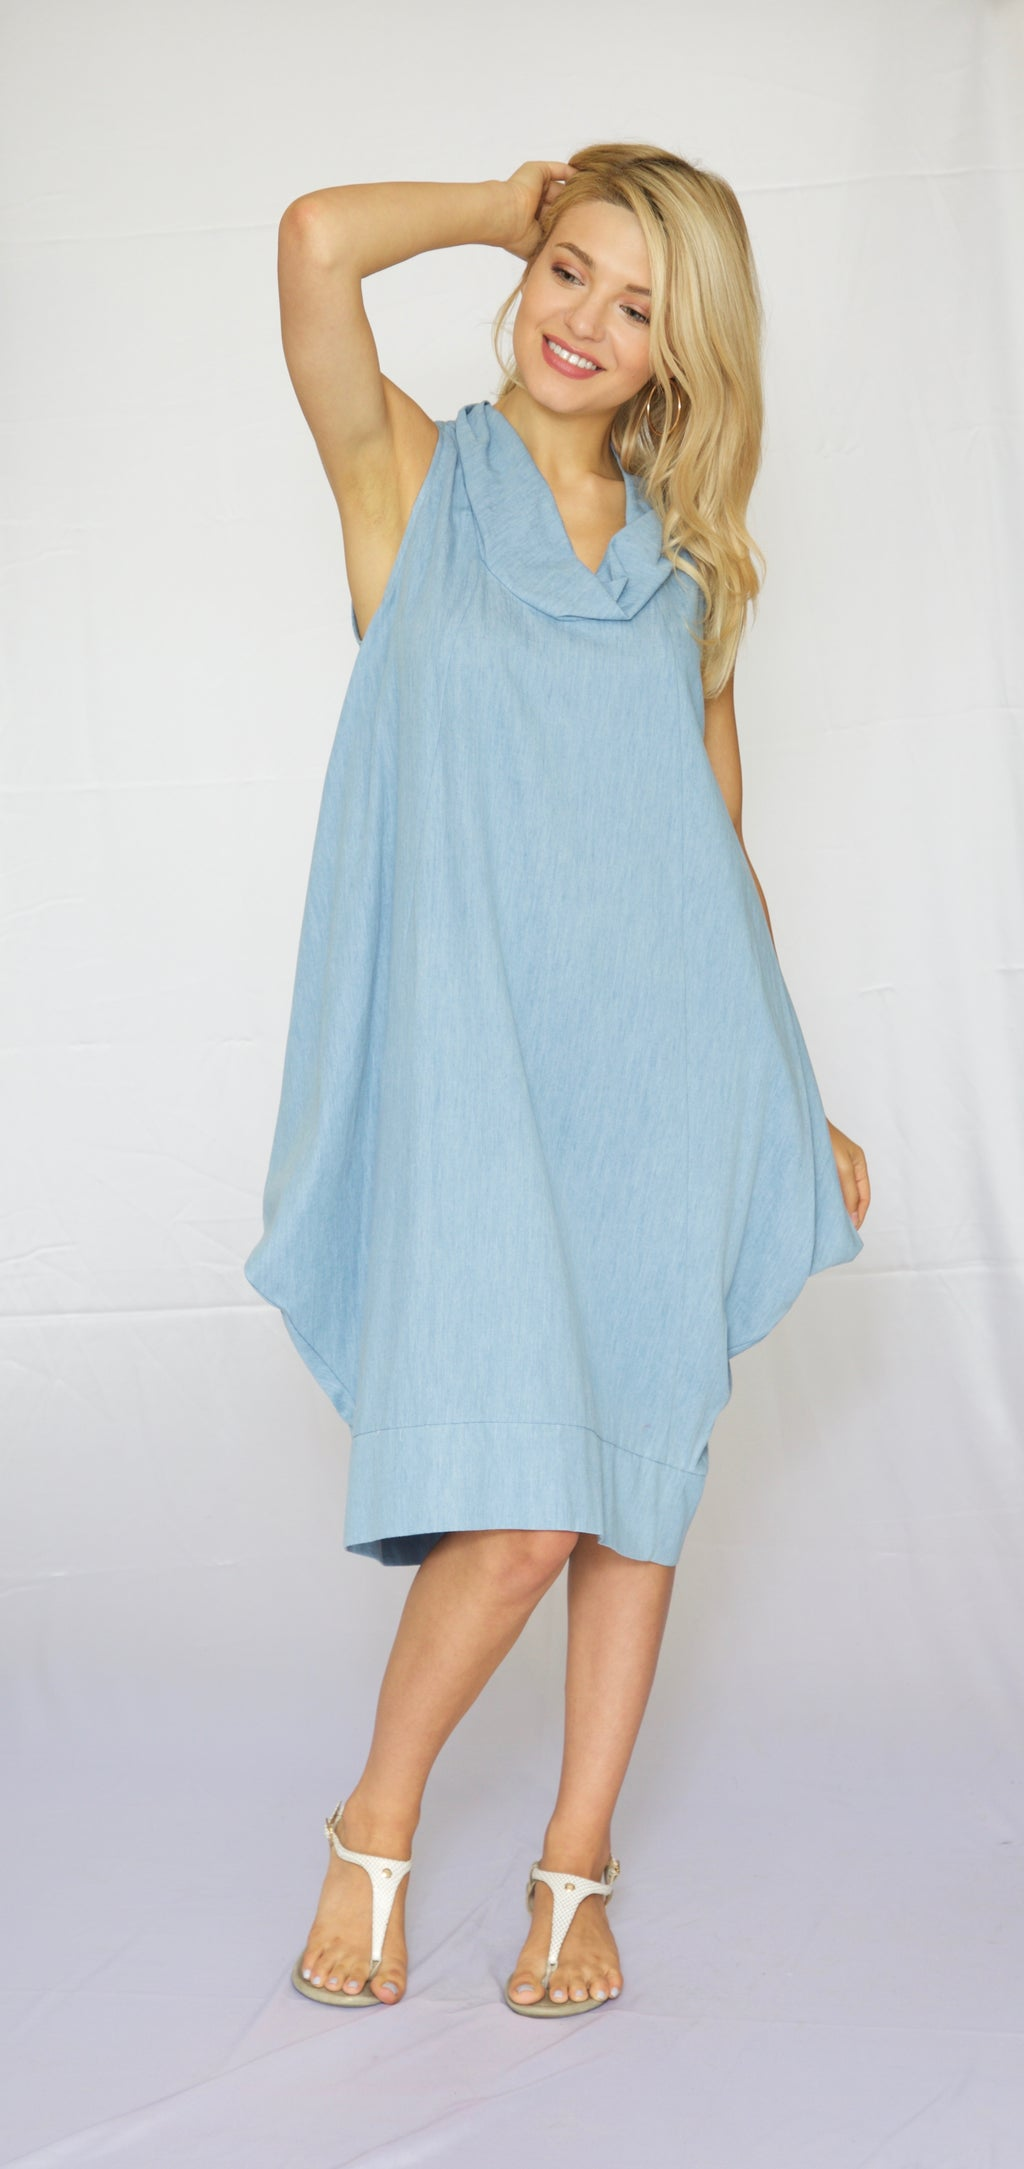 Trishia Grace-Cowl neck Sundress Washed Chambray